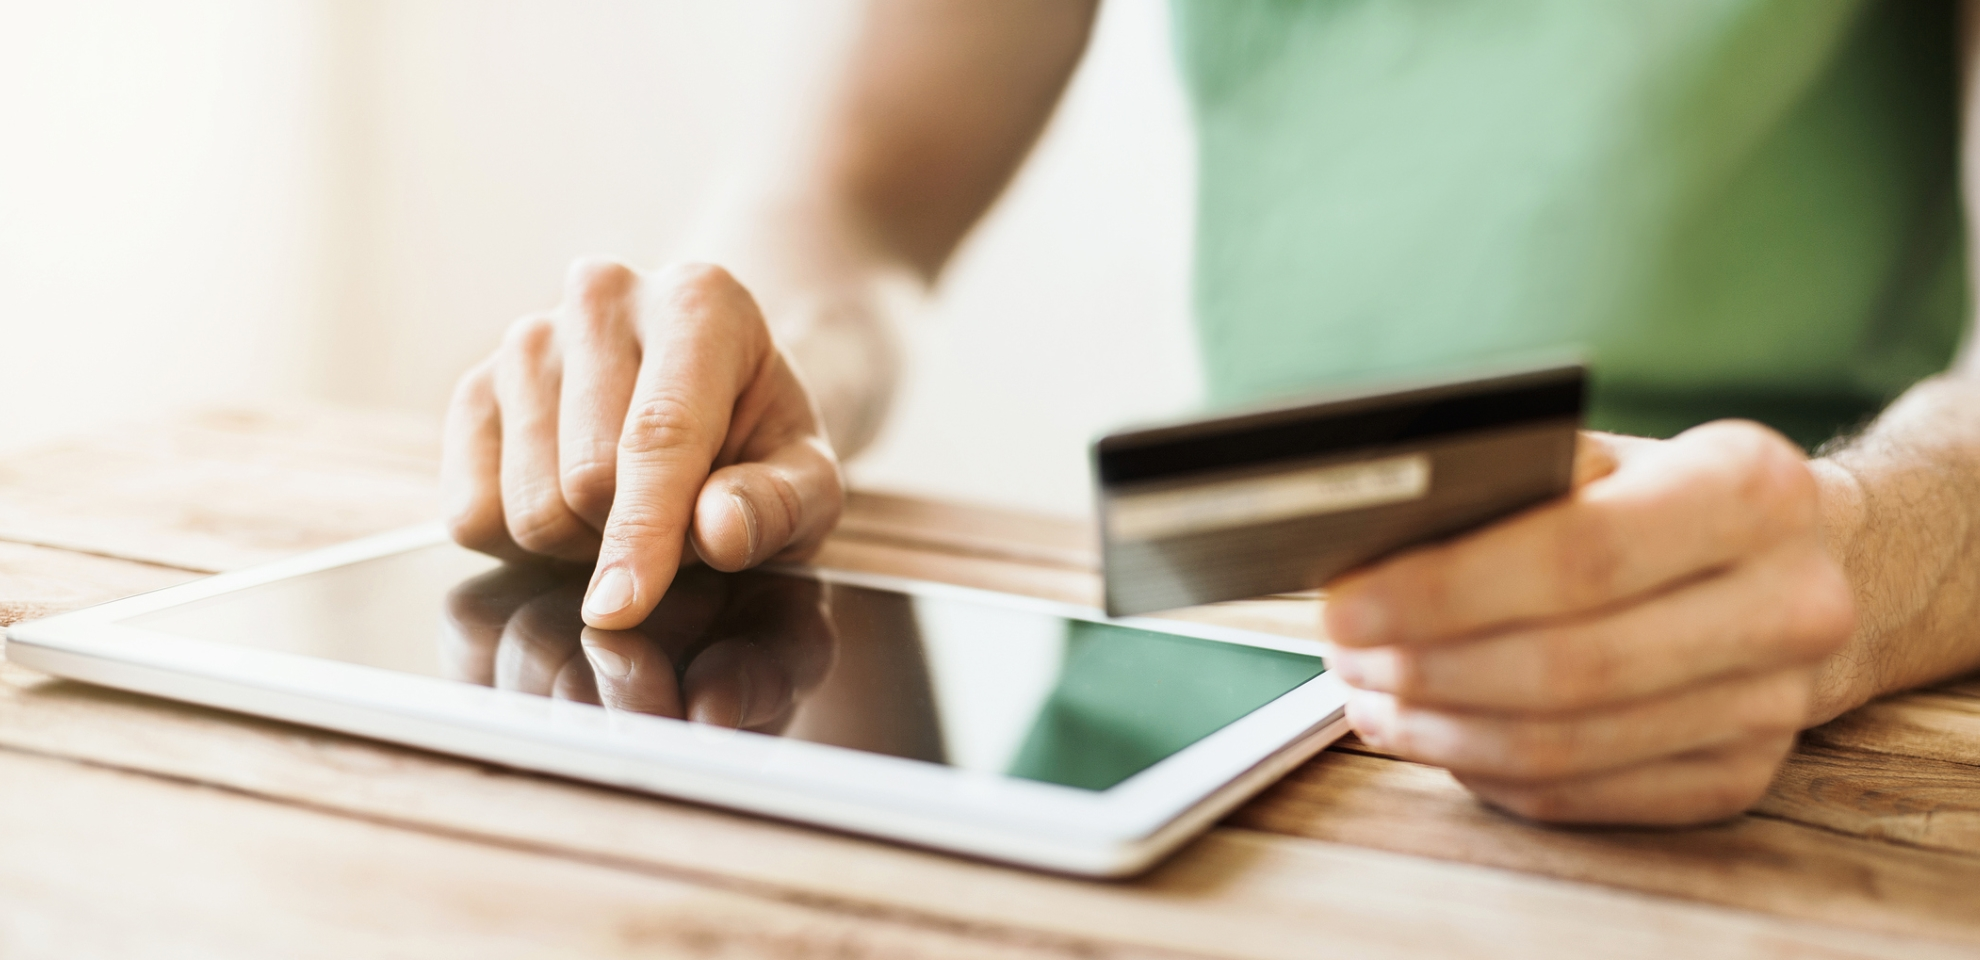 5 Things to Know About High-Risk Merchant Accounts